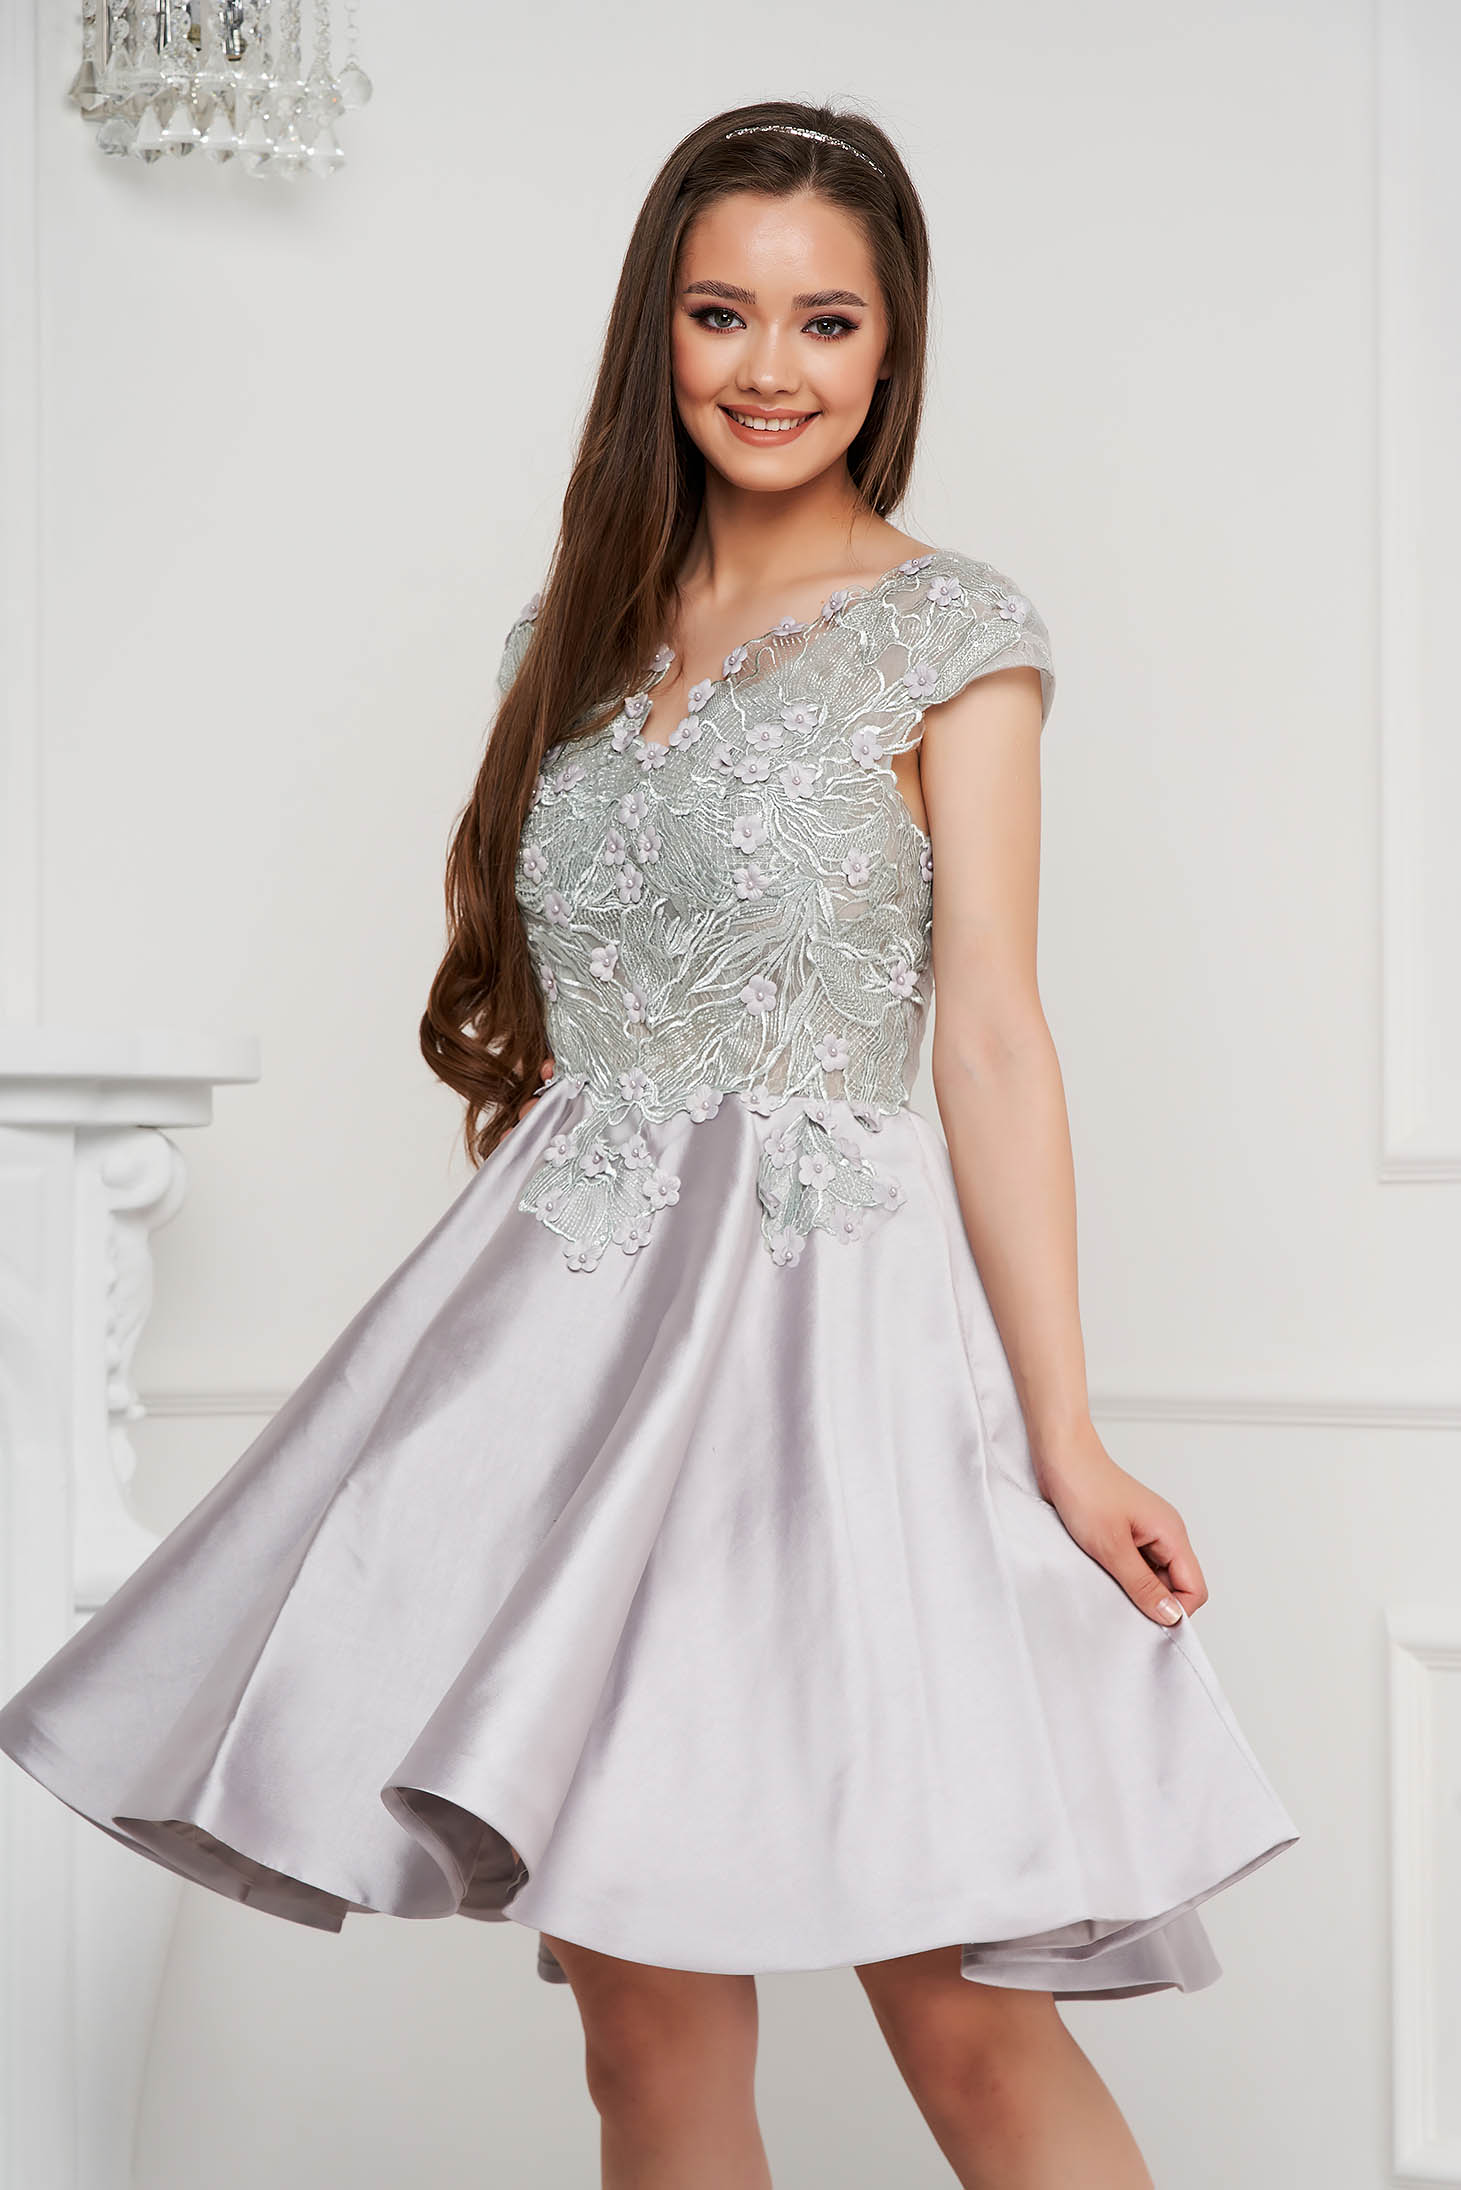 Grey dress short cut occasional laced from satin fabric texture cloche